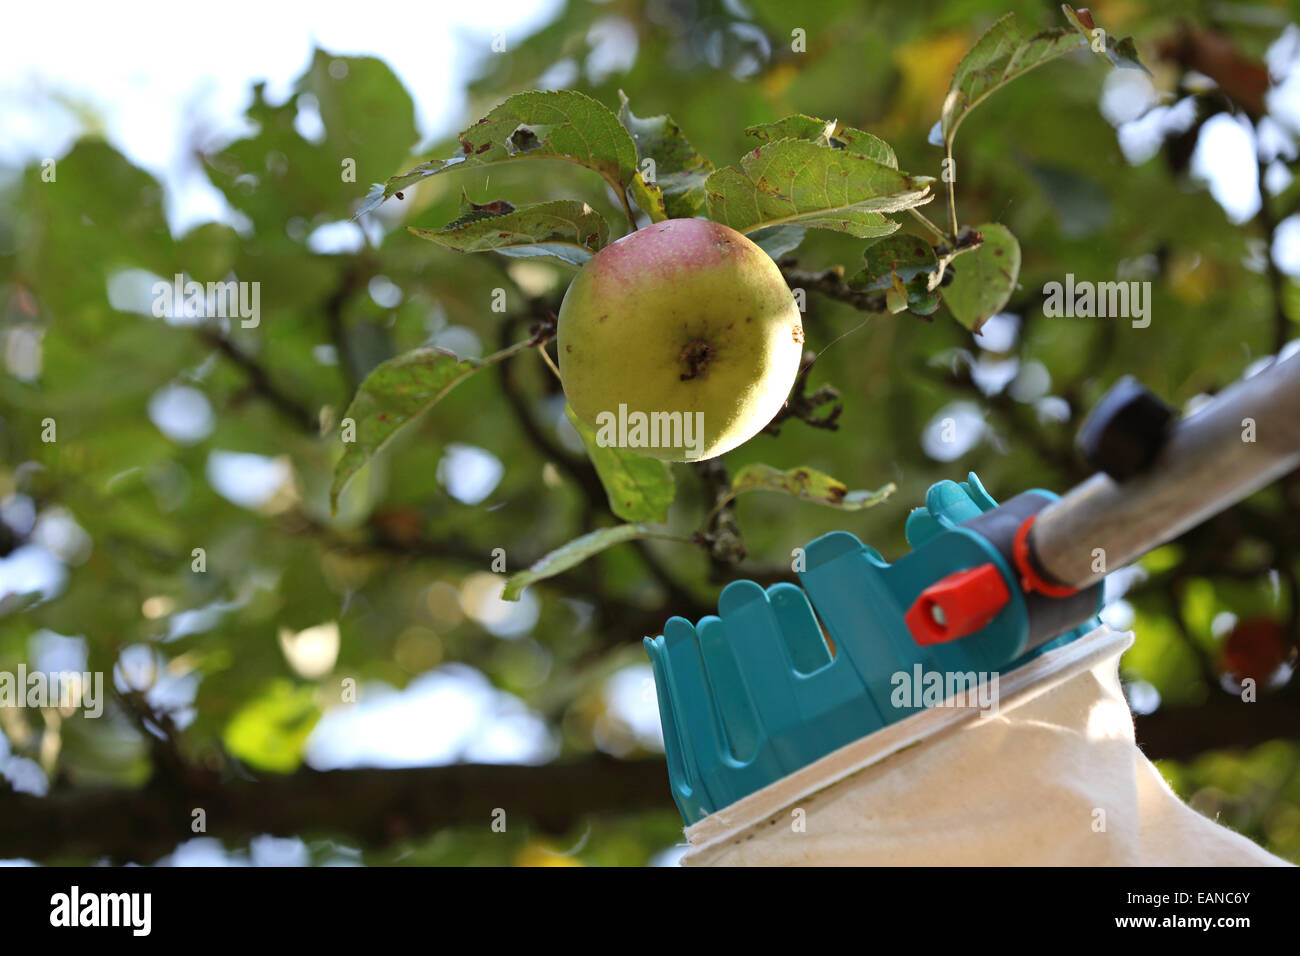 Urban apple harvest using a pick aid - Stock Image